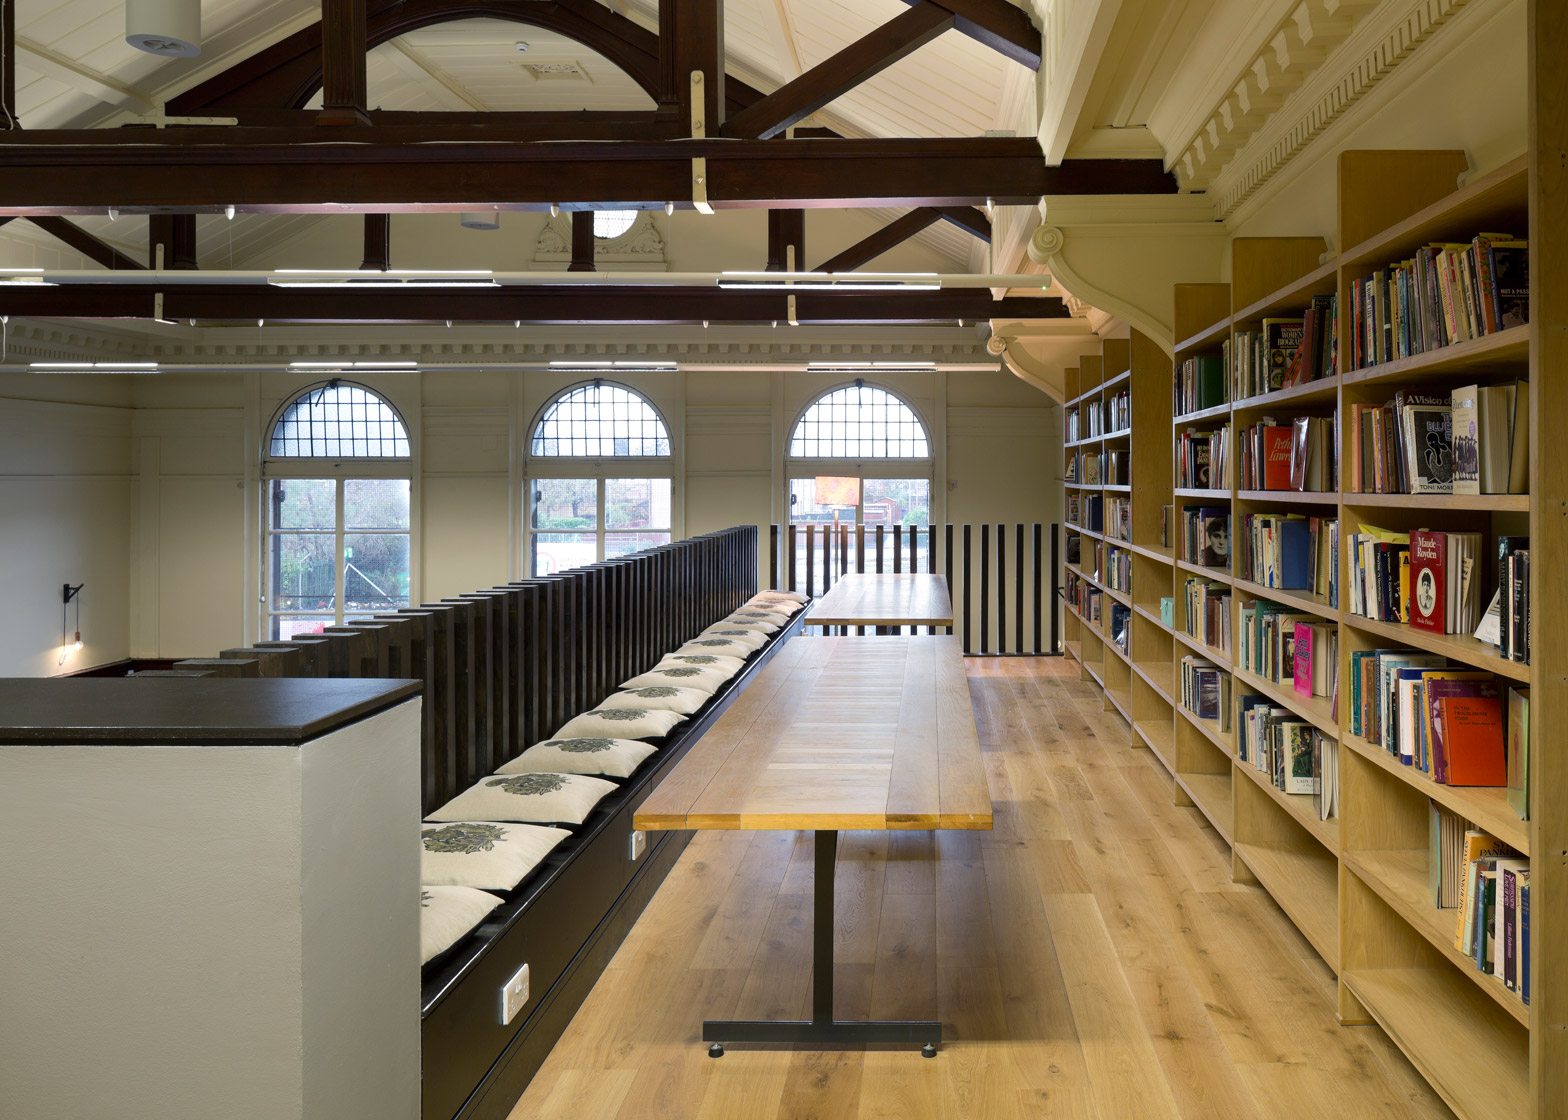 3 Of 6 Glasgow Womens Library By Collective Architecture In Scotland